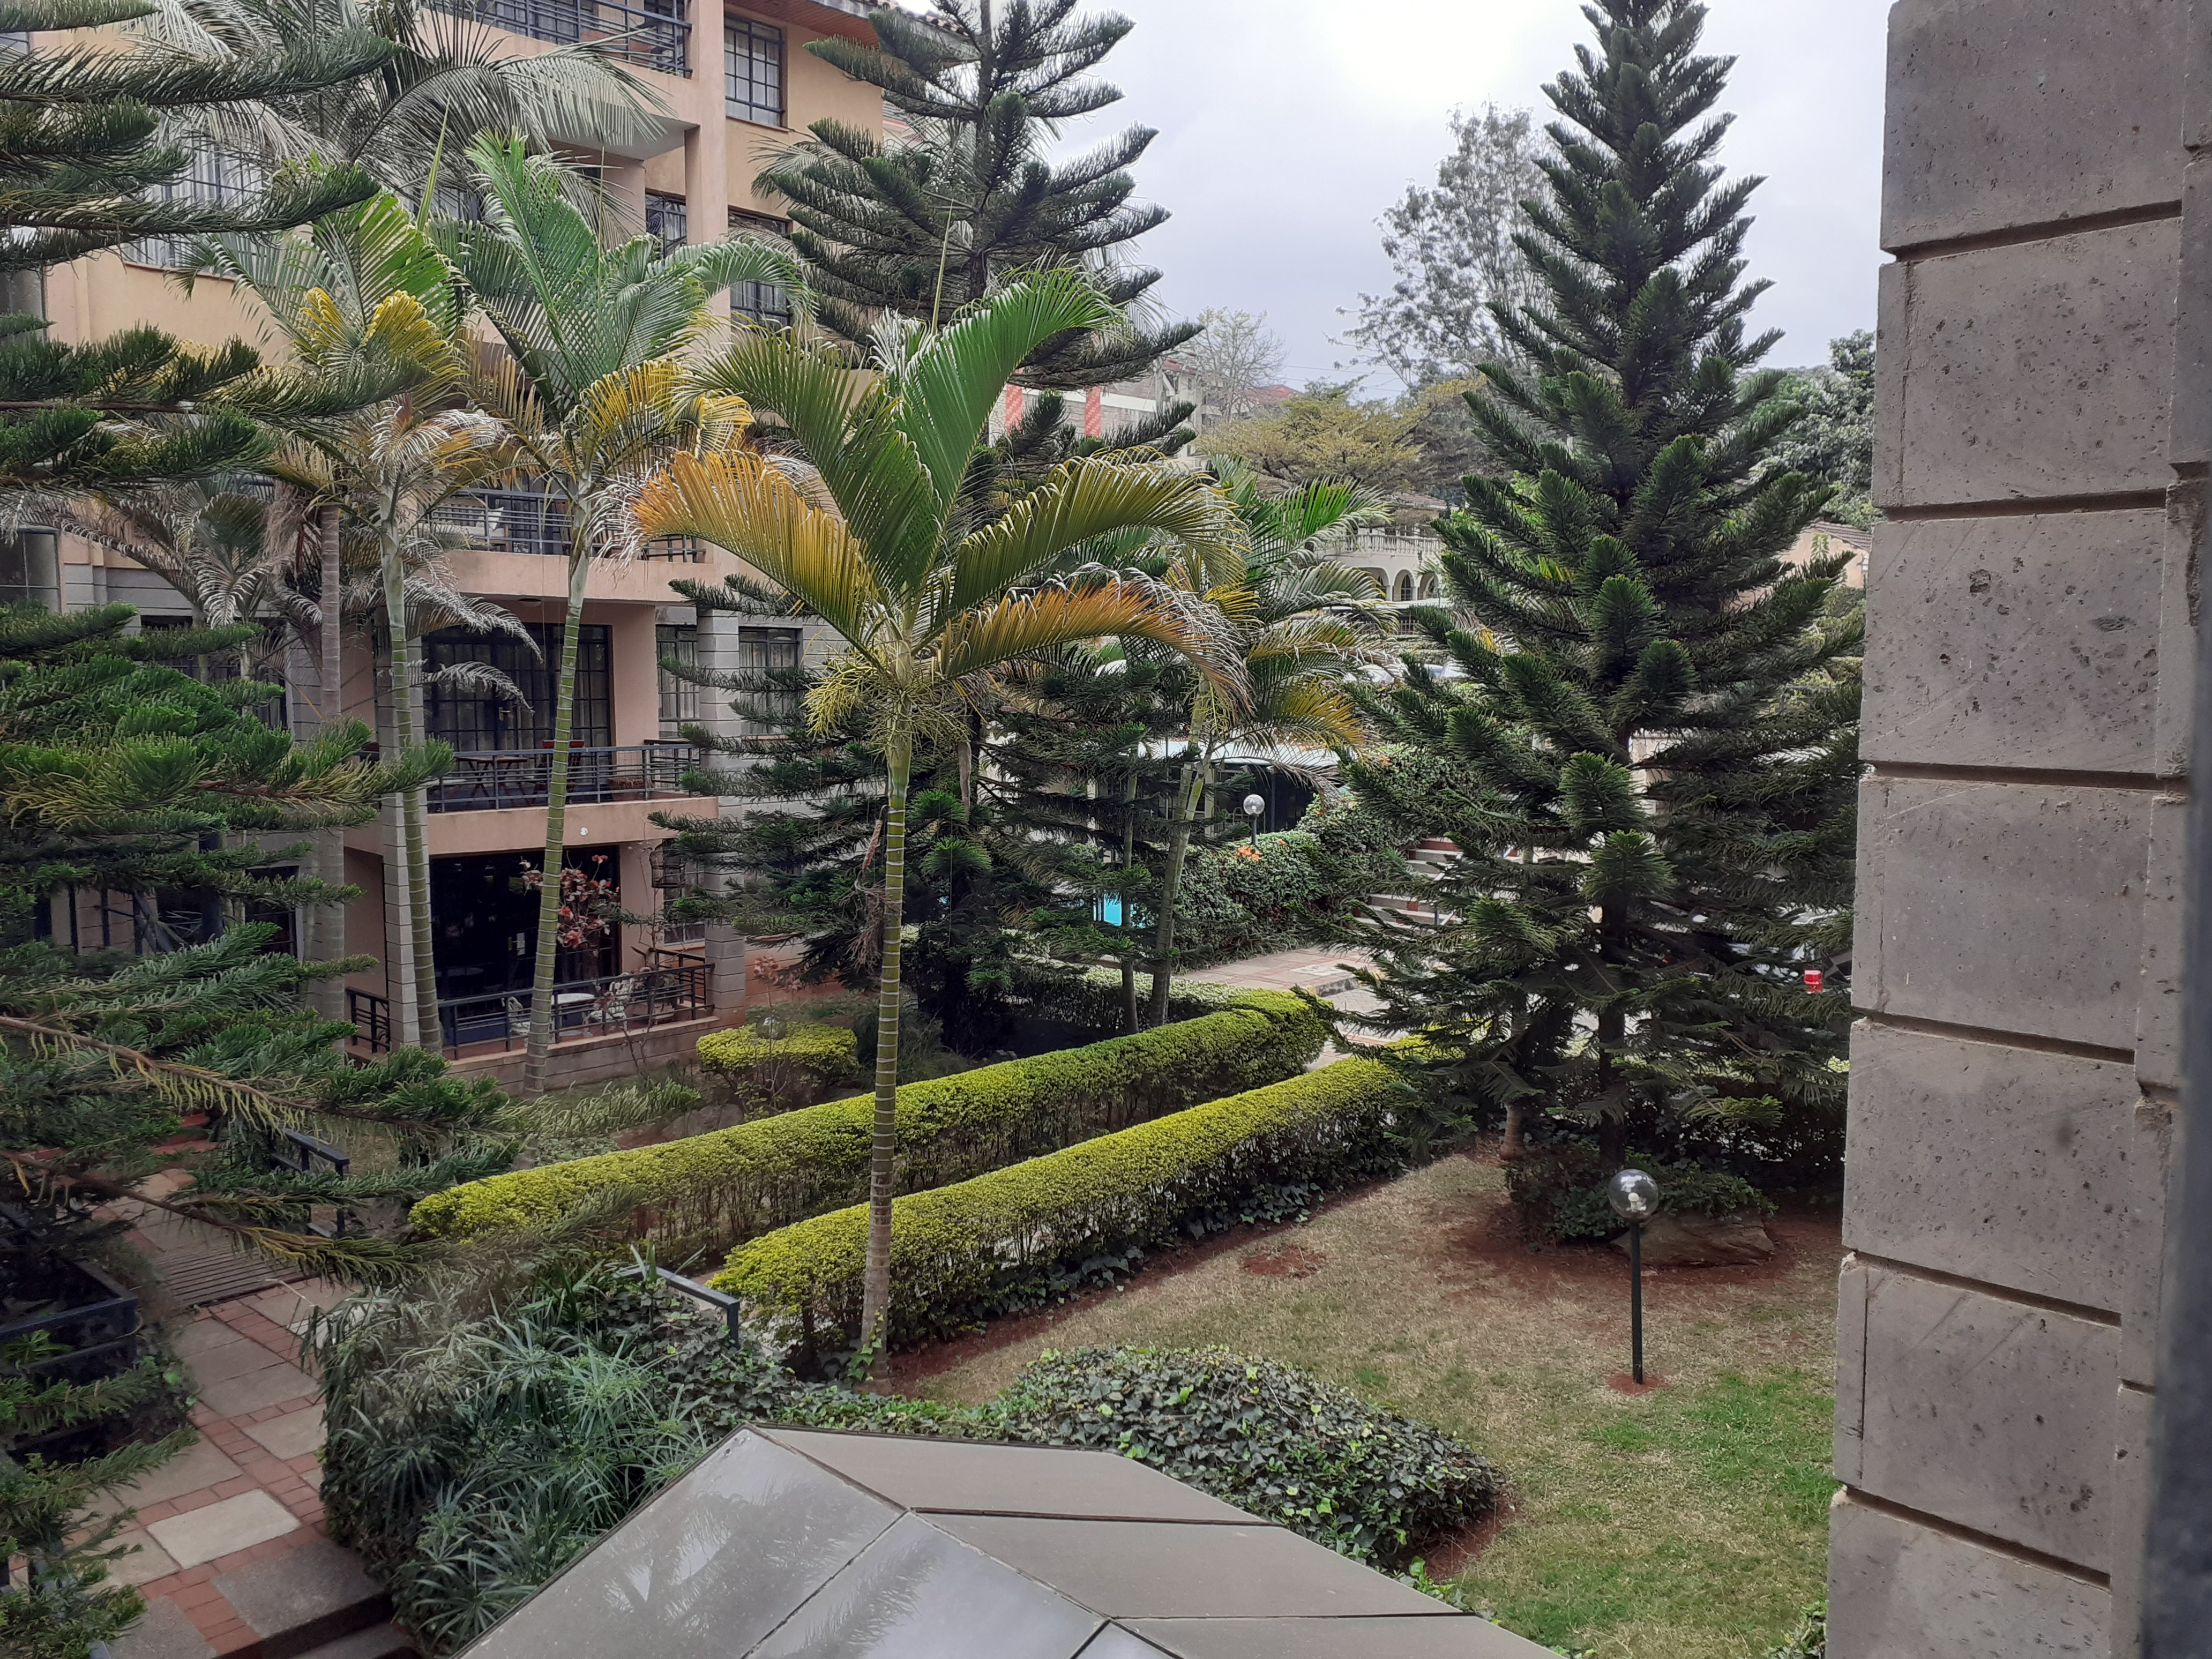 2 Bedroom furnished and serviced Apartment in Lavington